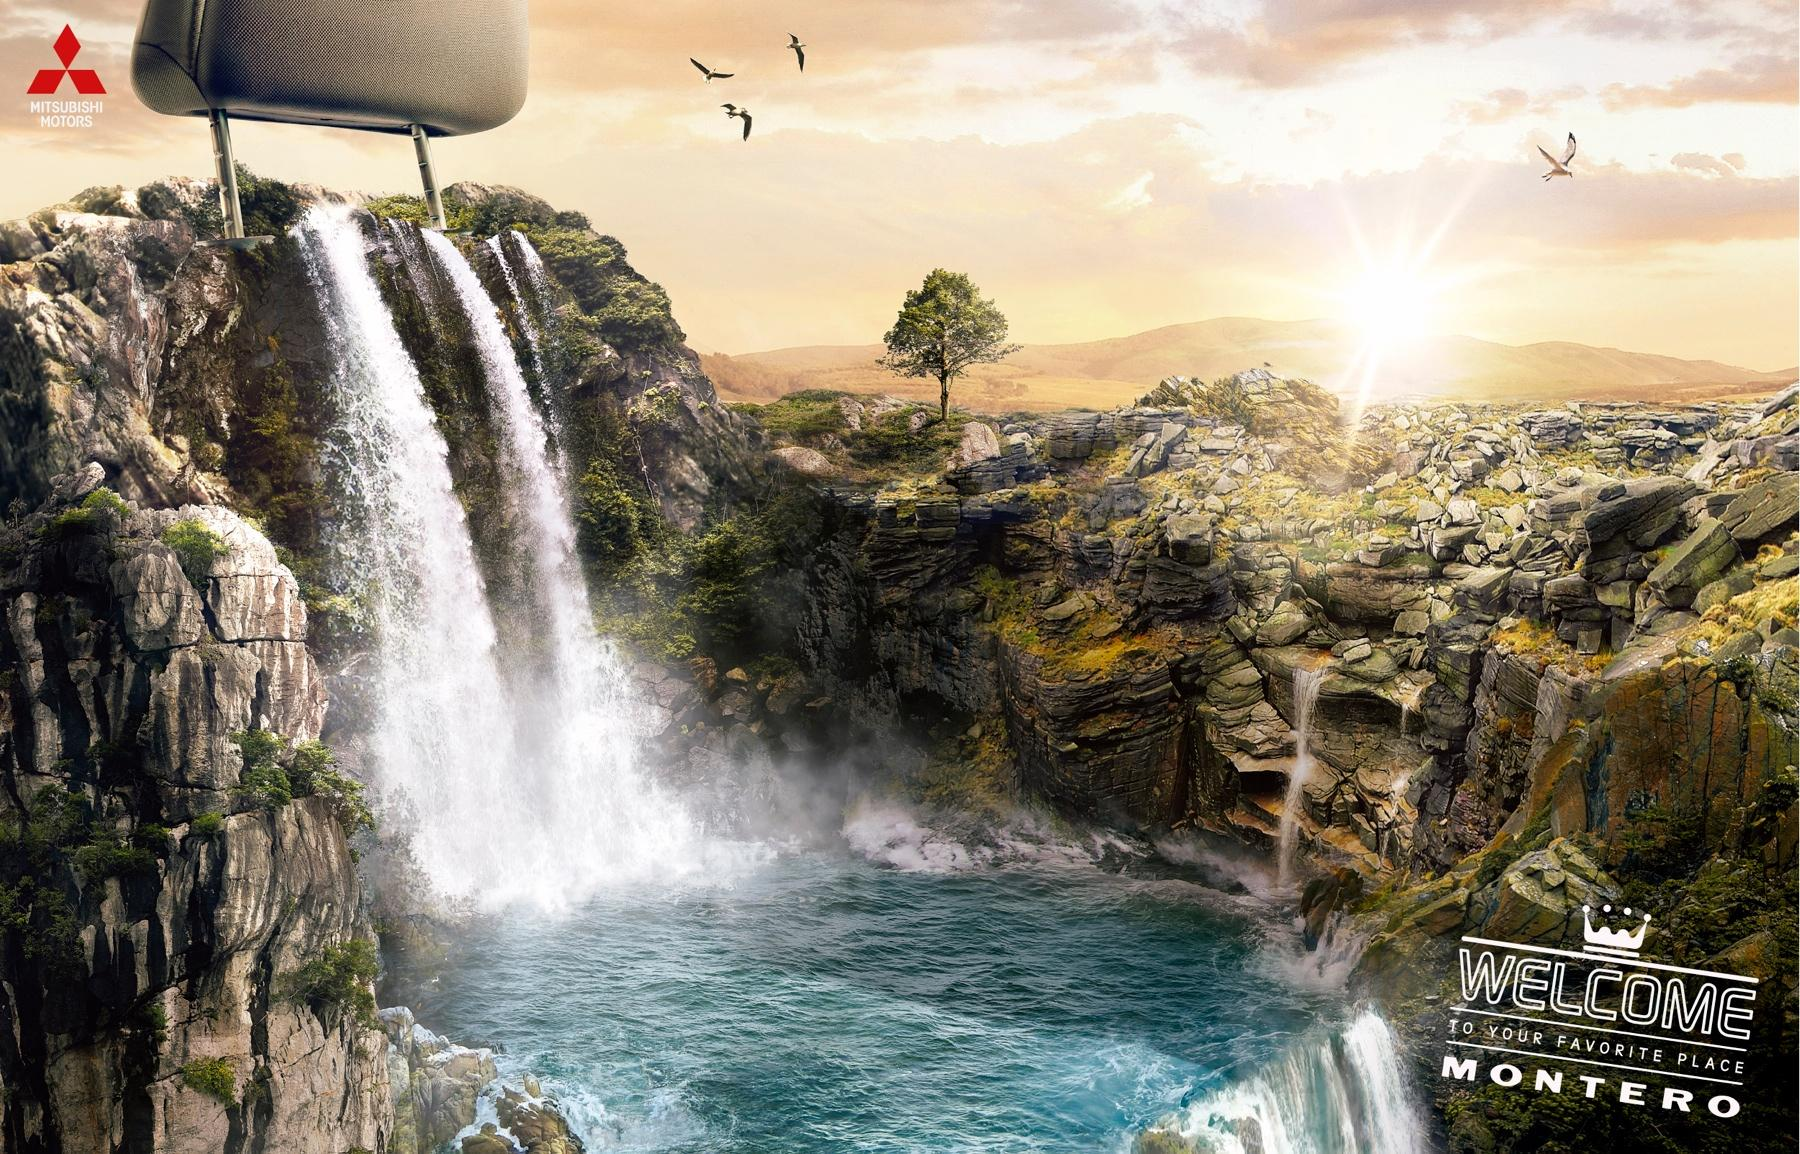 Mitsubishi Print Ad -  Welcome to your favorite place